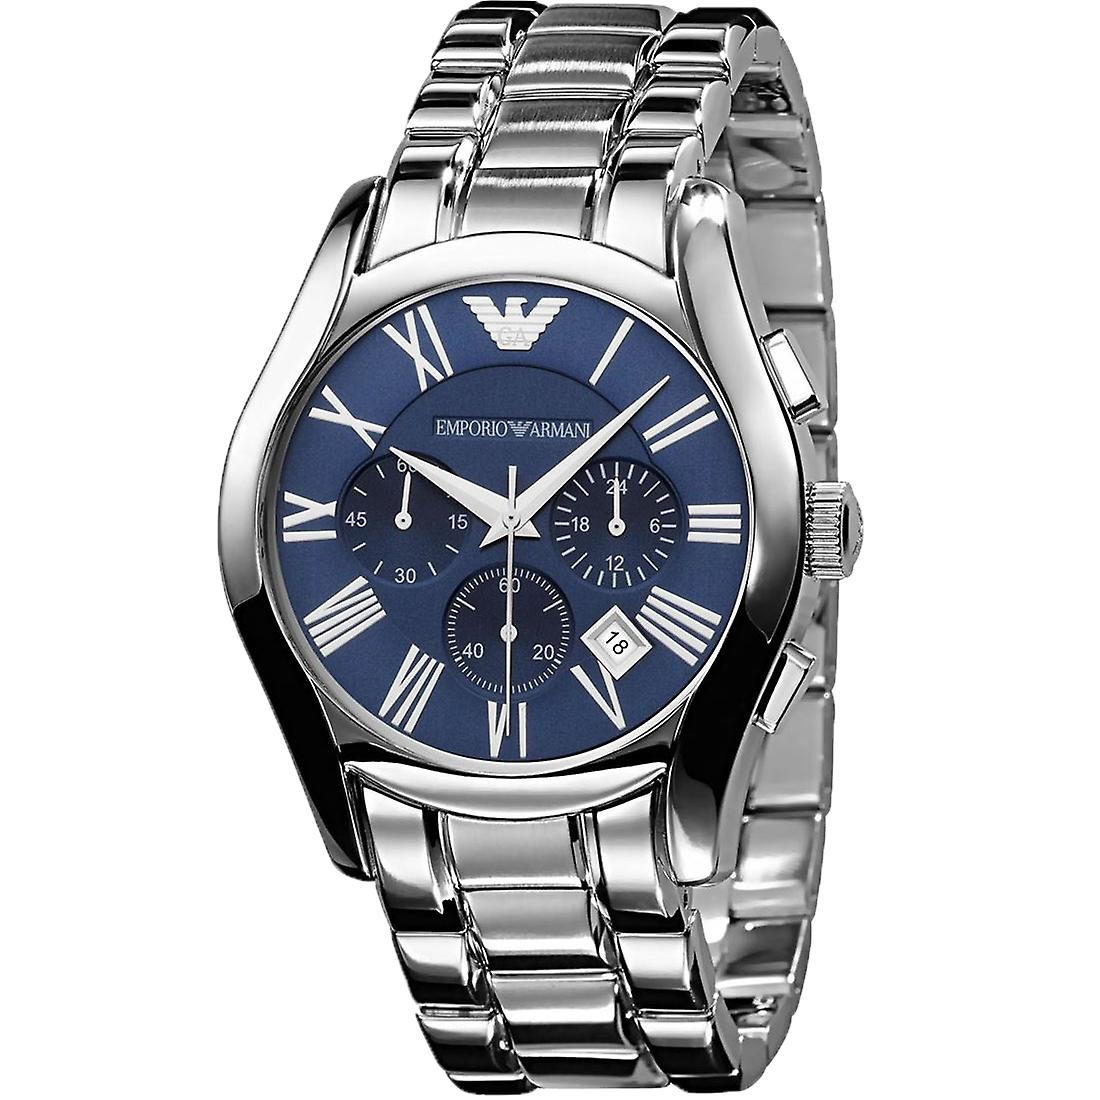 Emporio Armani AR1635 Stainless Steel Blue Dial Chronograph Watch